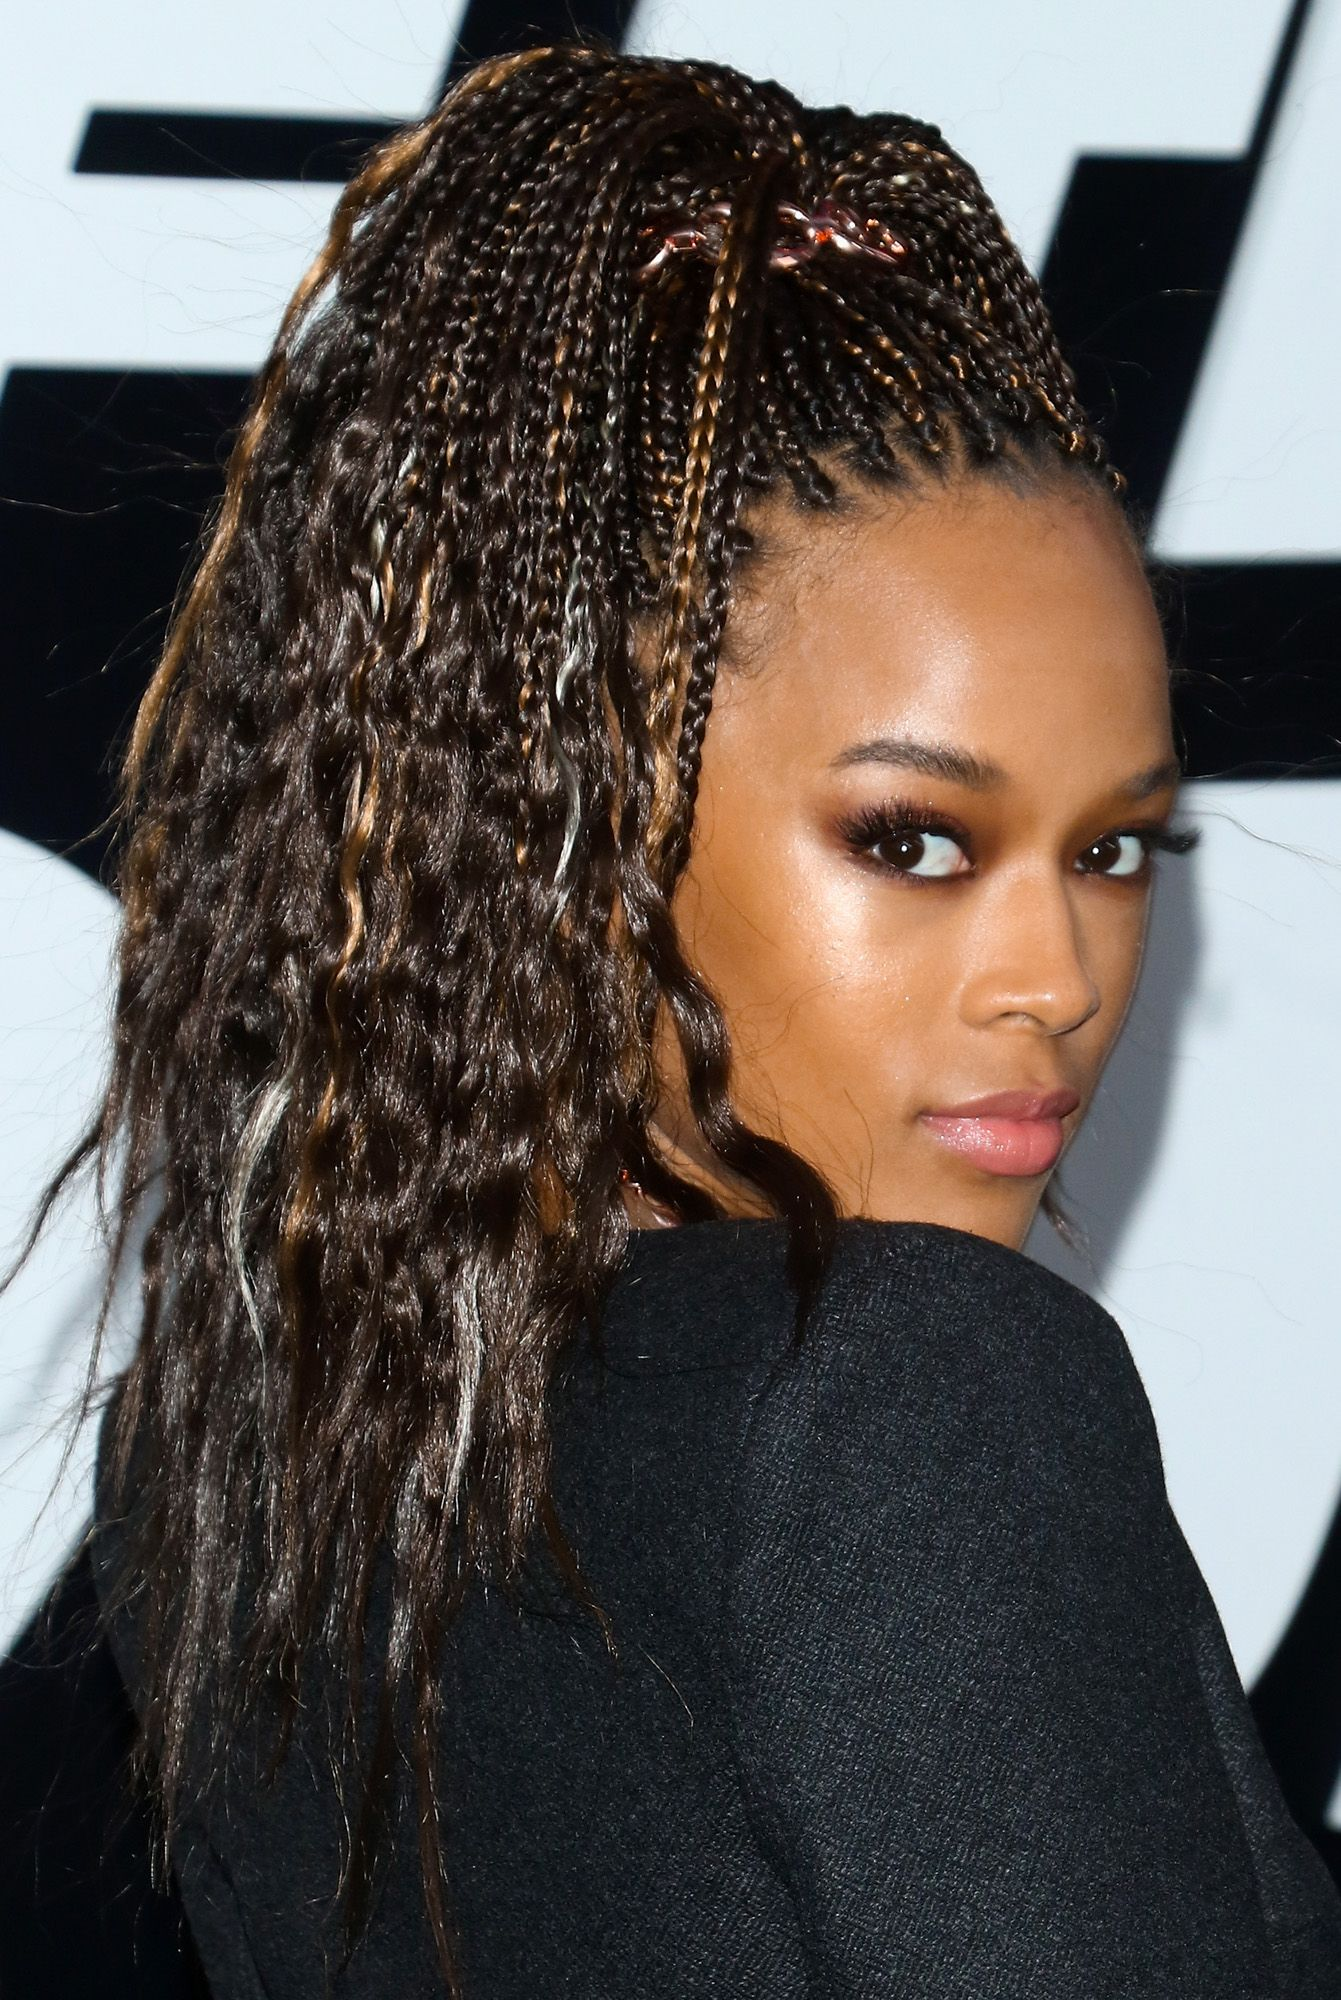 23 Braided Hairstyles for Fall 2017 Cute Braided Hairstyles for